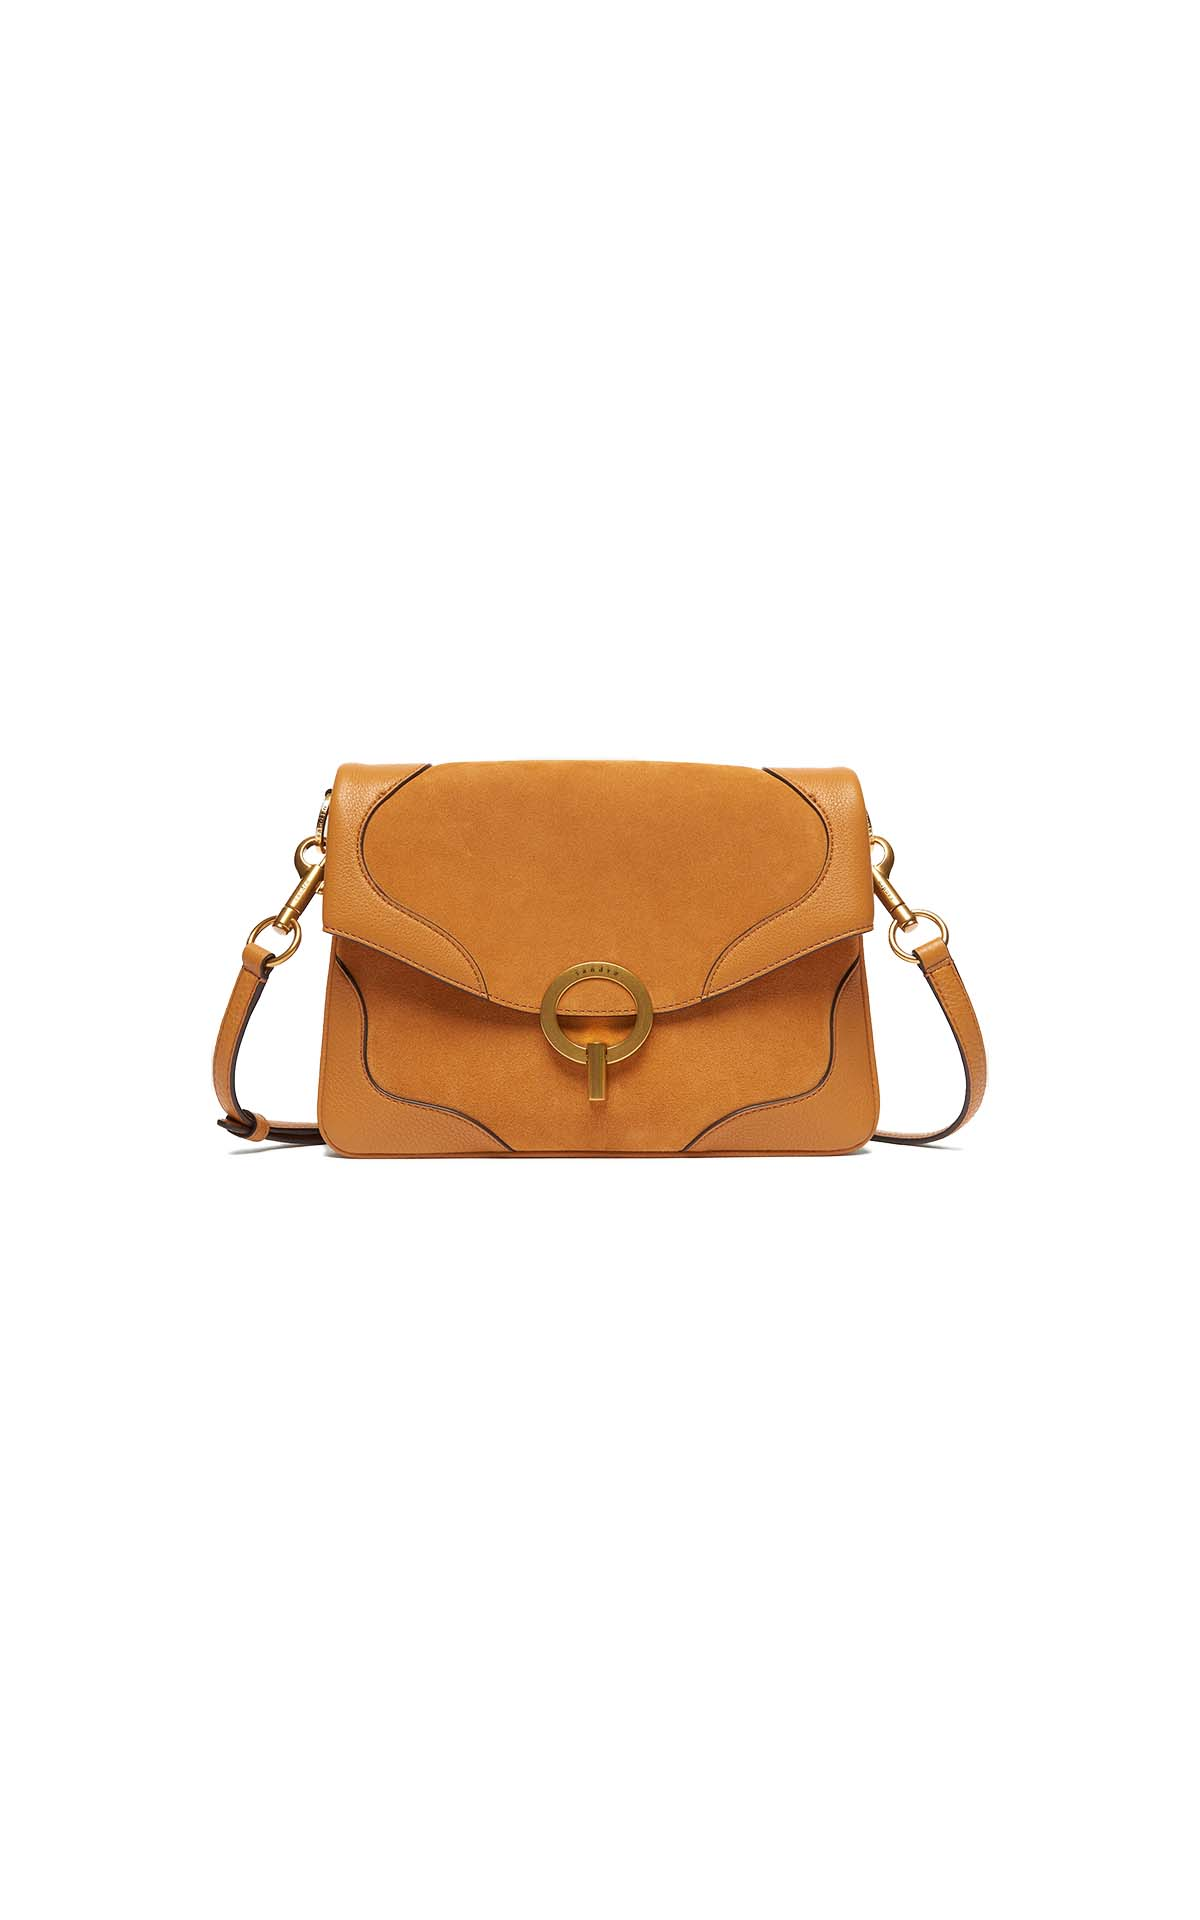 Sandro crossbody at The Bicester Village Shopping Collection